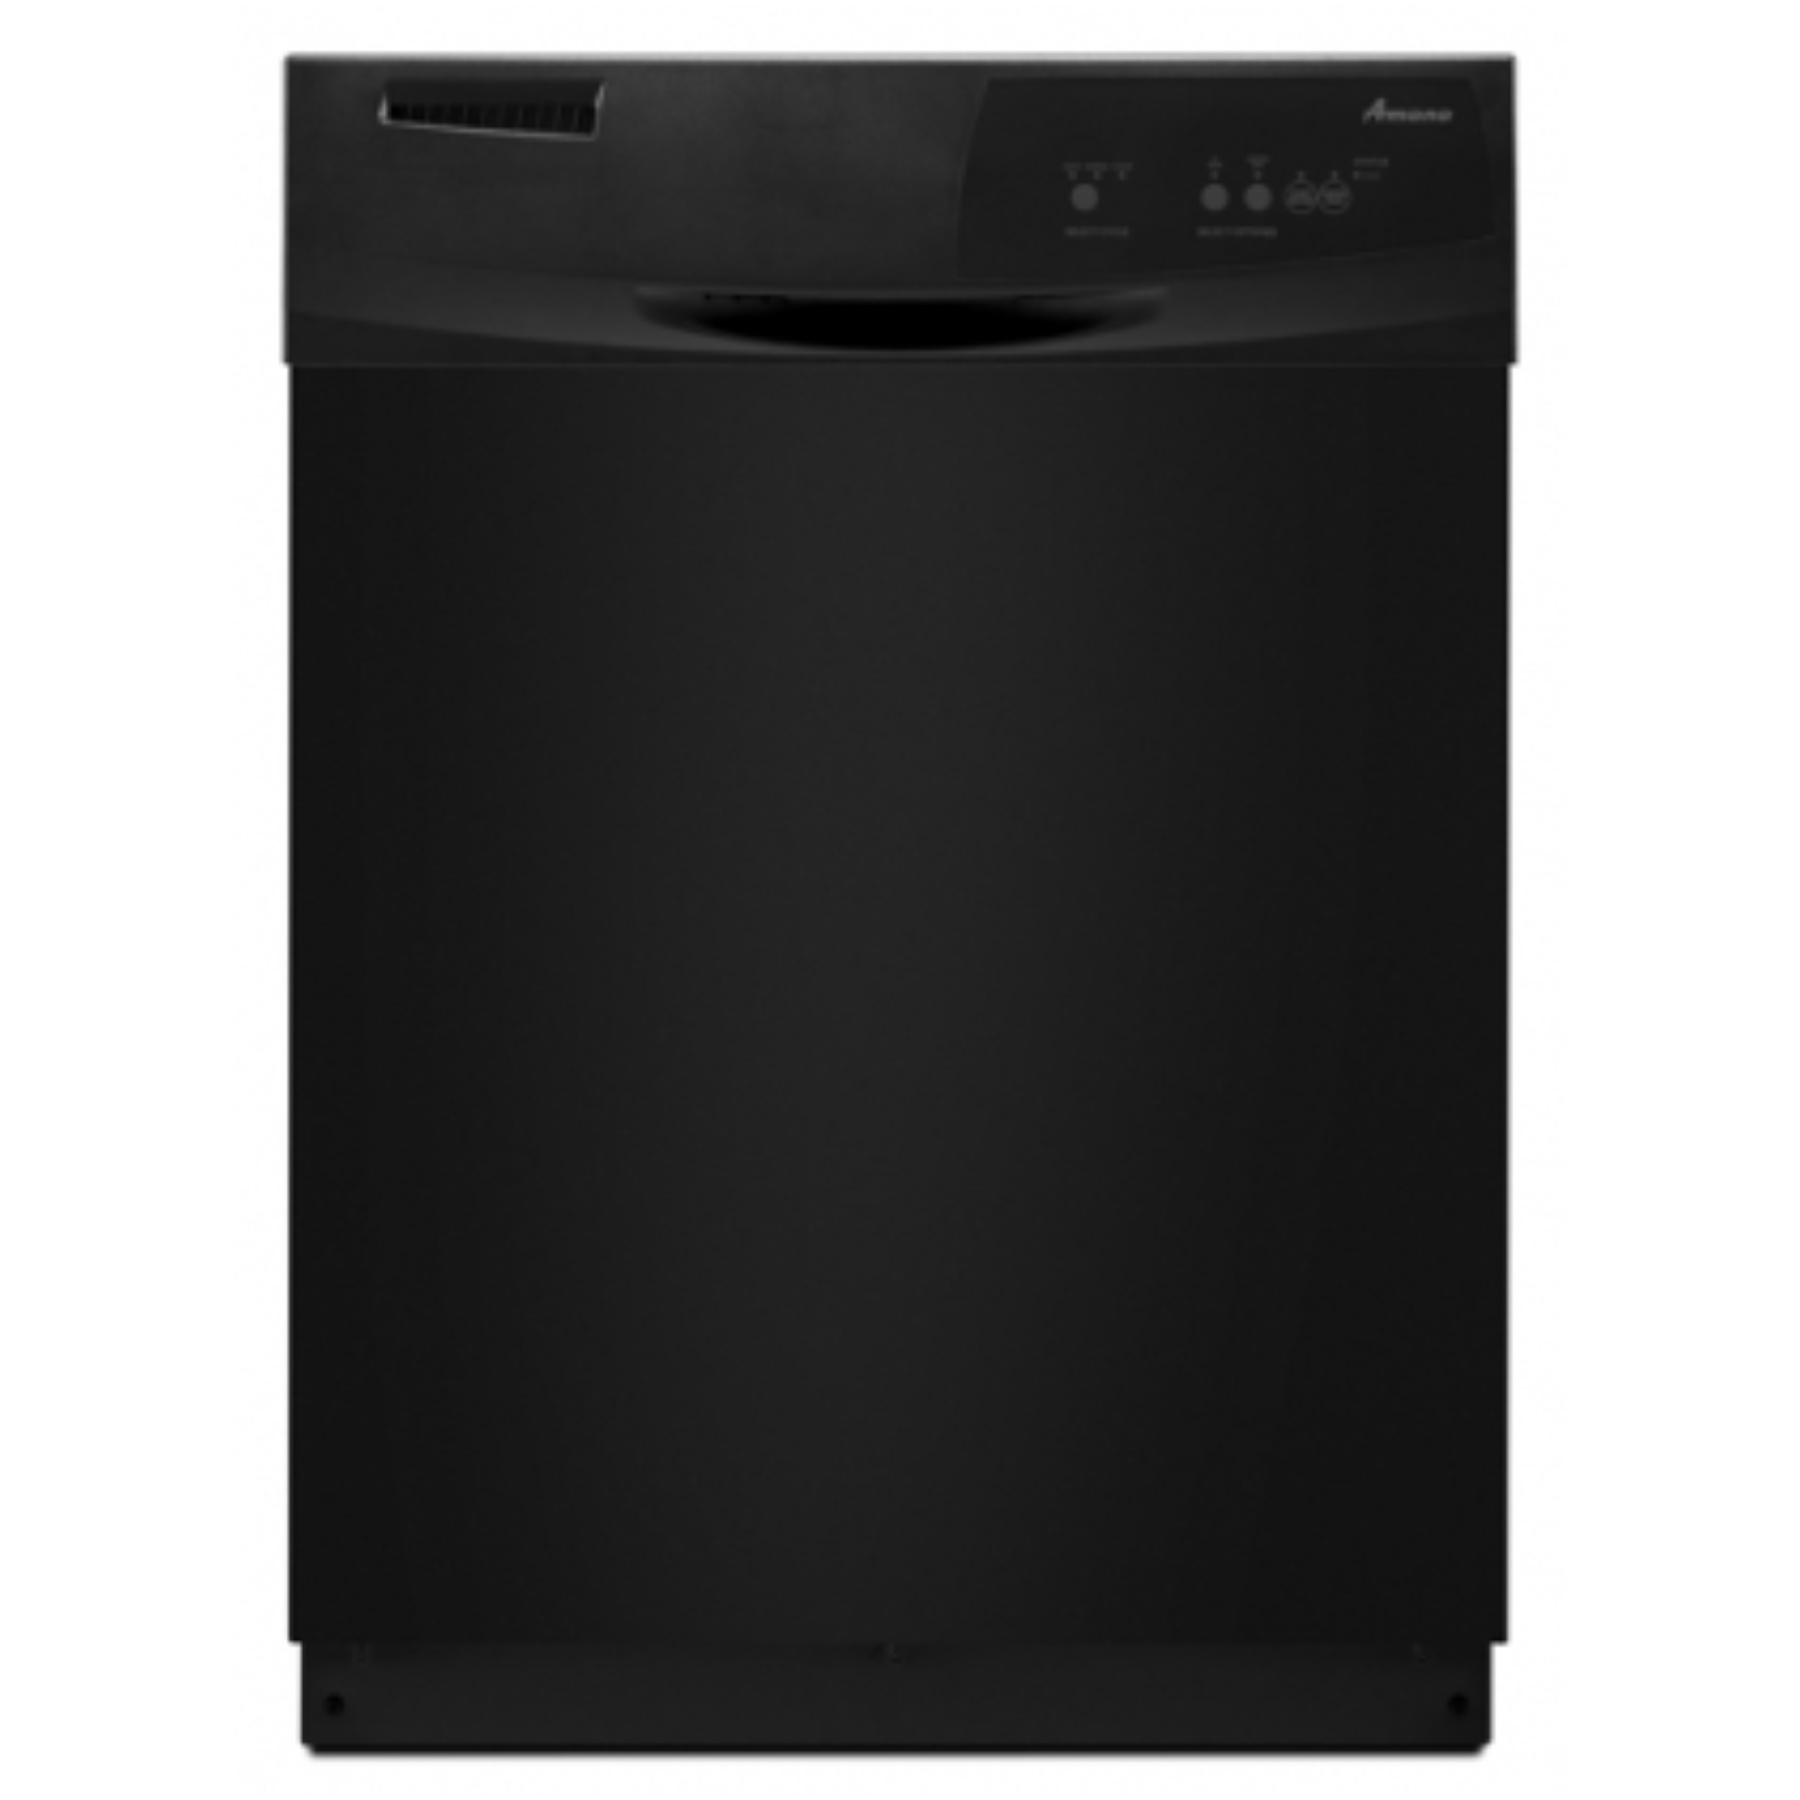 "AMANA� BUILT-IN 24"" TALL TUB DISHWASHER, BLACK, 3 CYCLES"